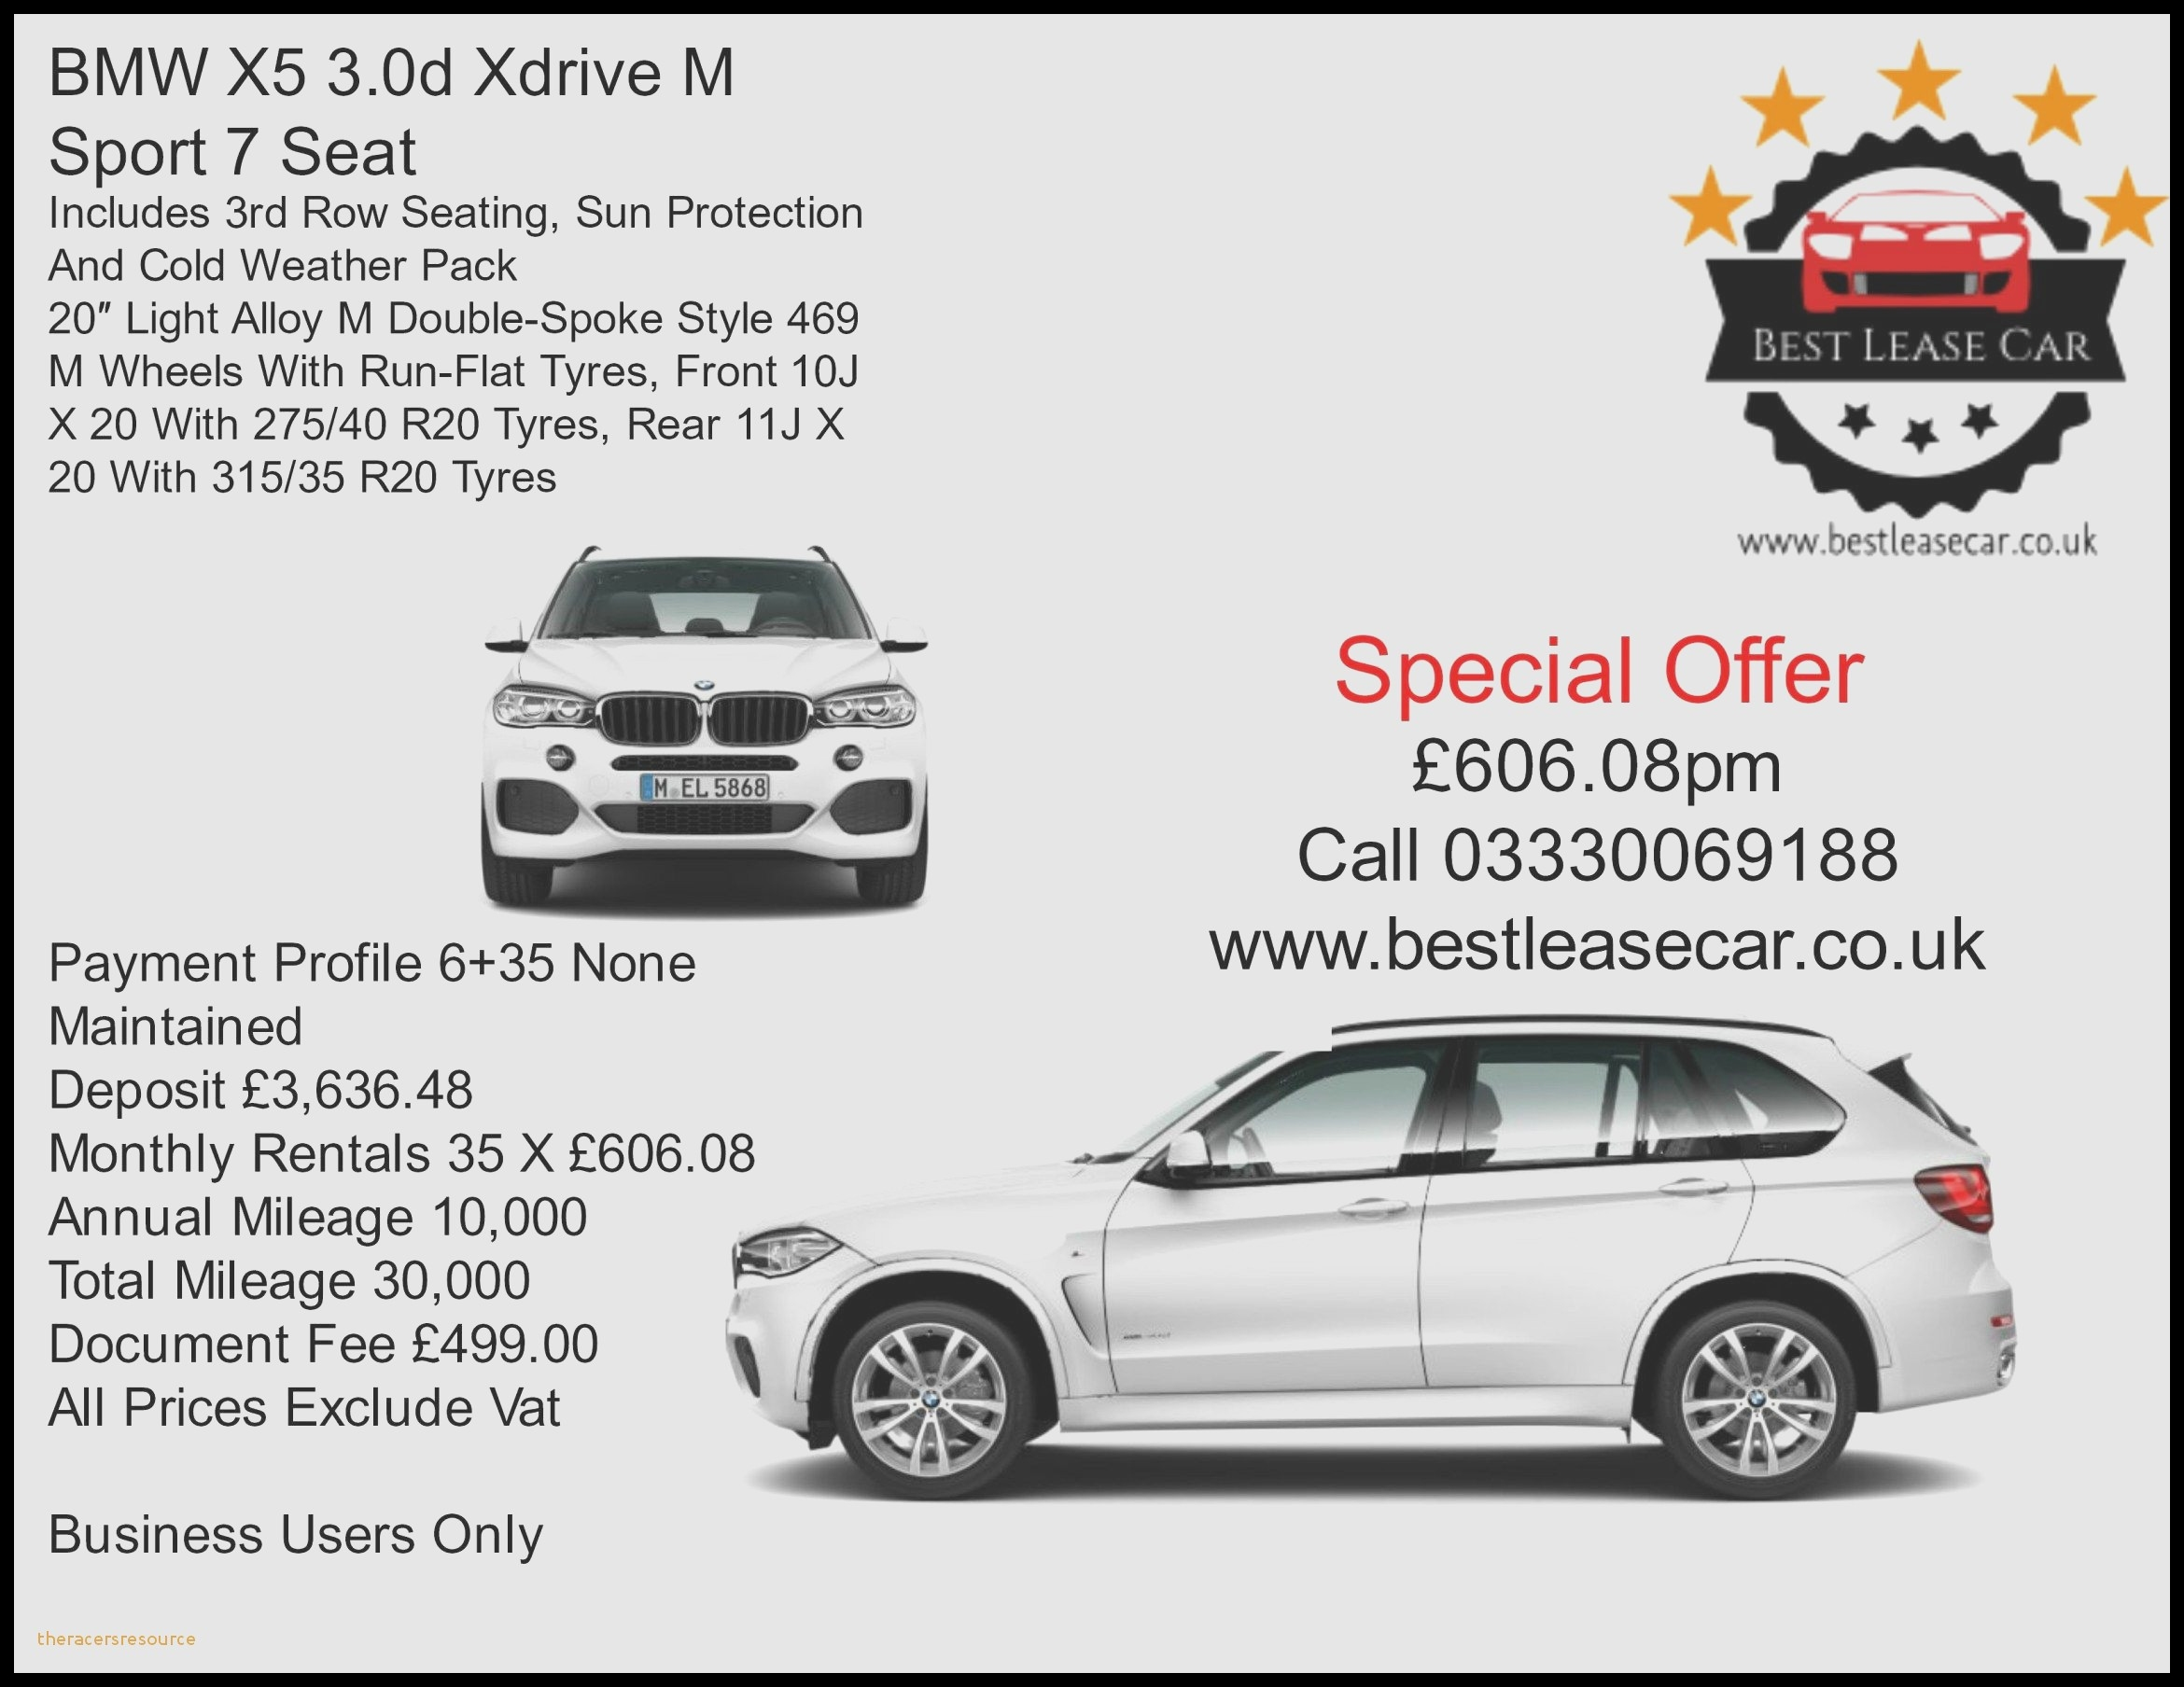 Top 20 Used Cars to Buy New Bmw X5 2016 Lease Deals Bmw Lease Deals Swapalease